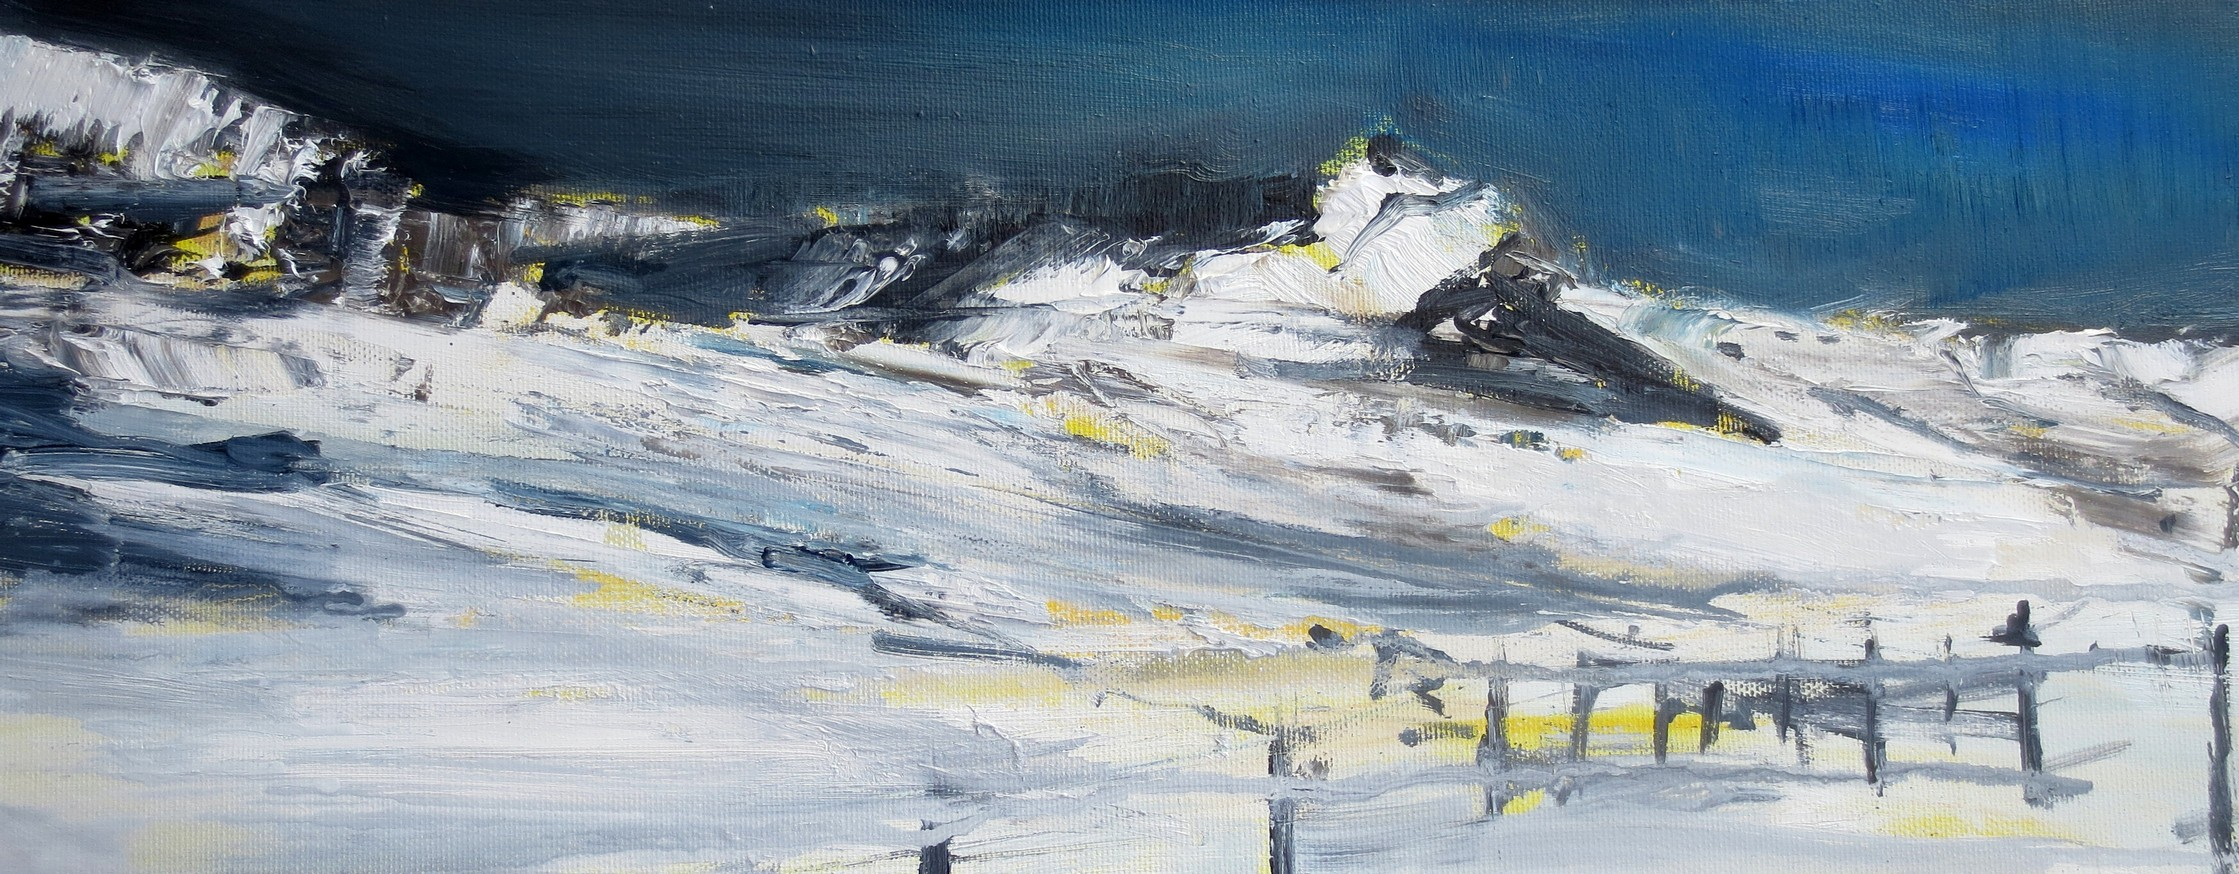 2018 Nevicata 20x50cm oil on canvas